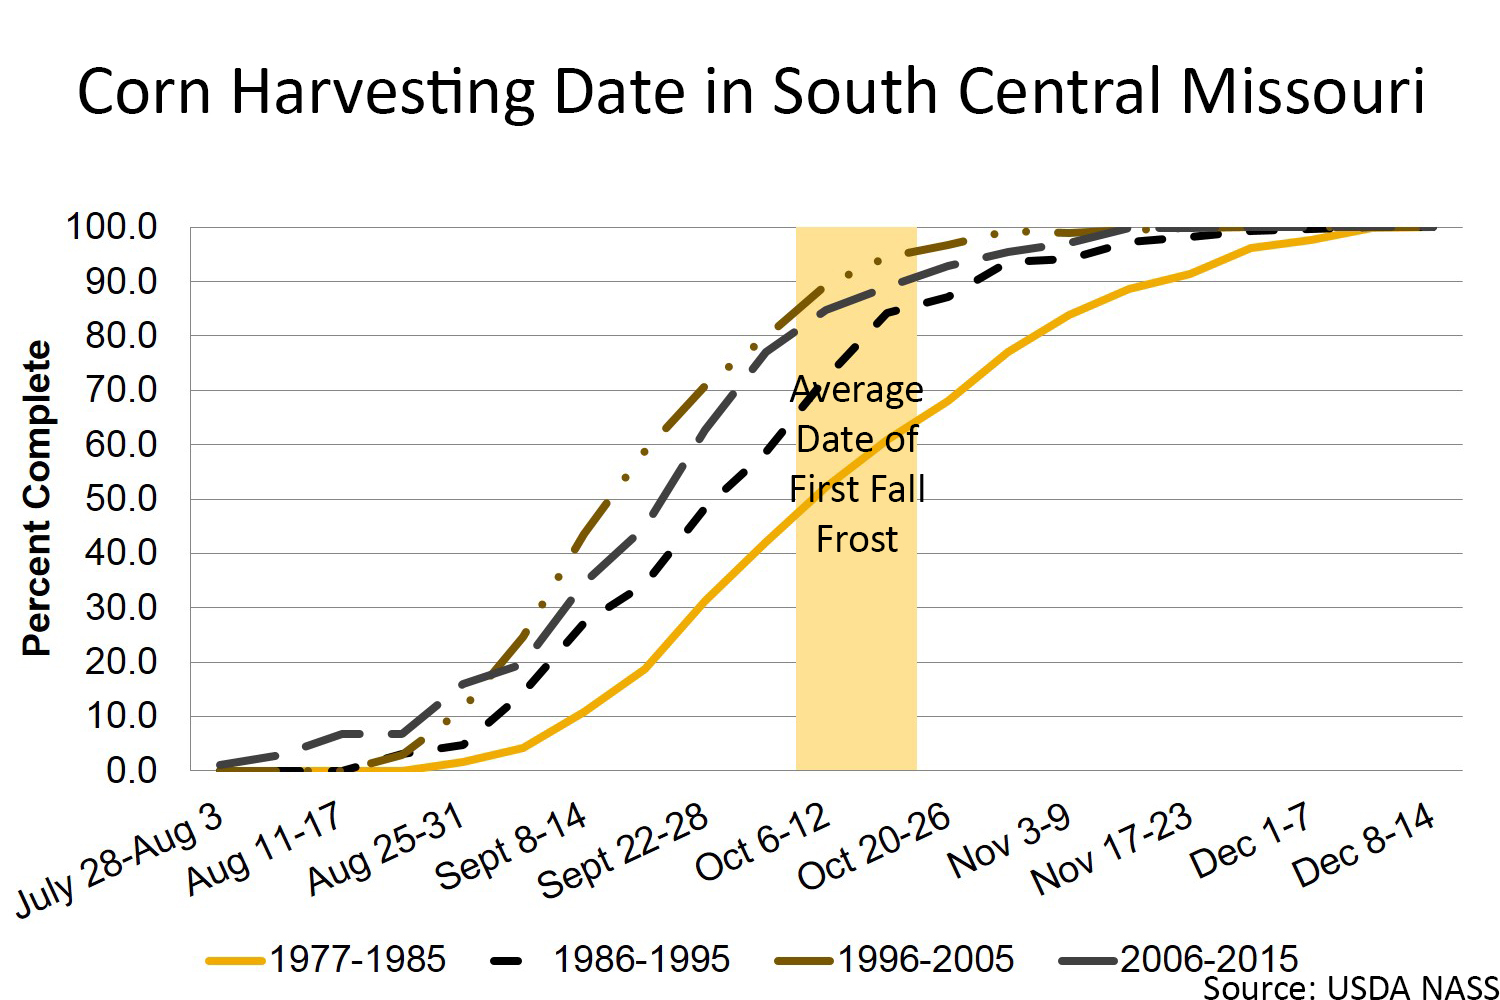 Corn harvesting date in south central Missouri chart